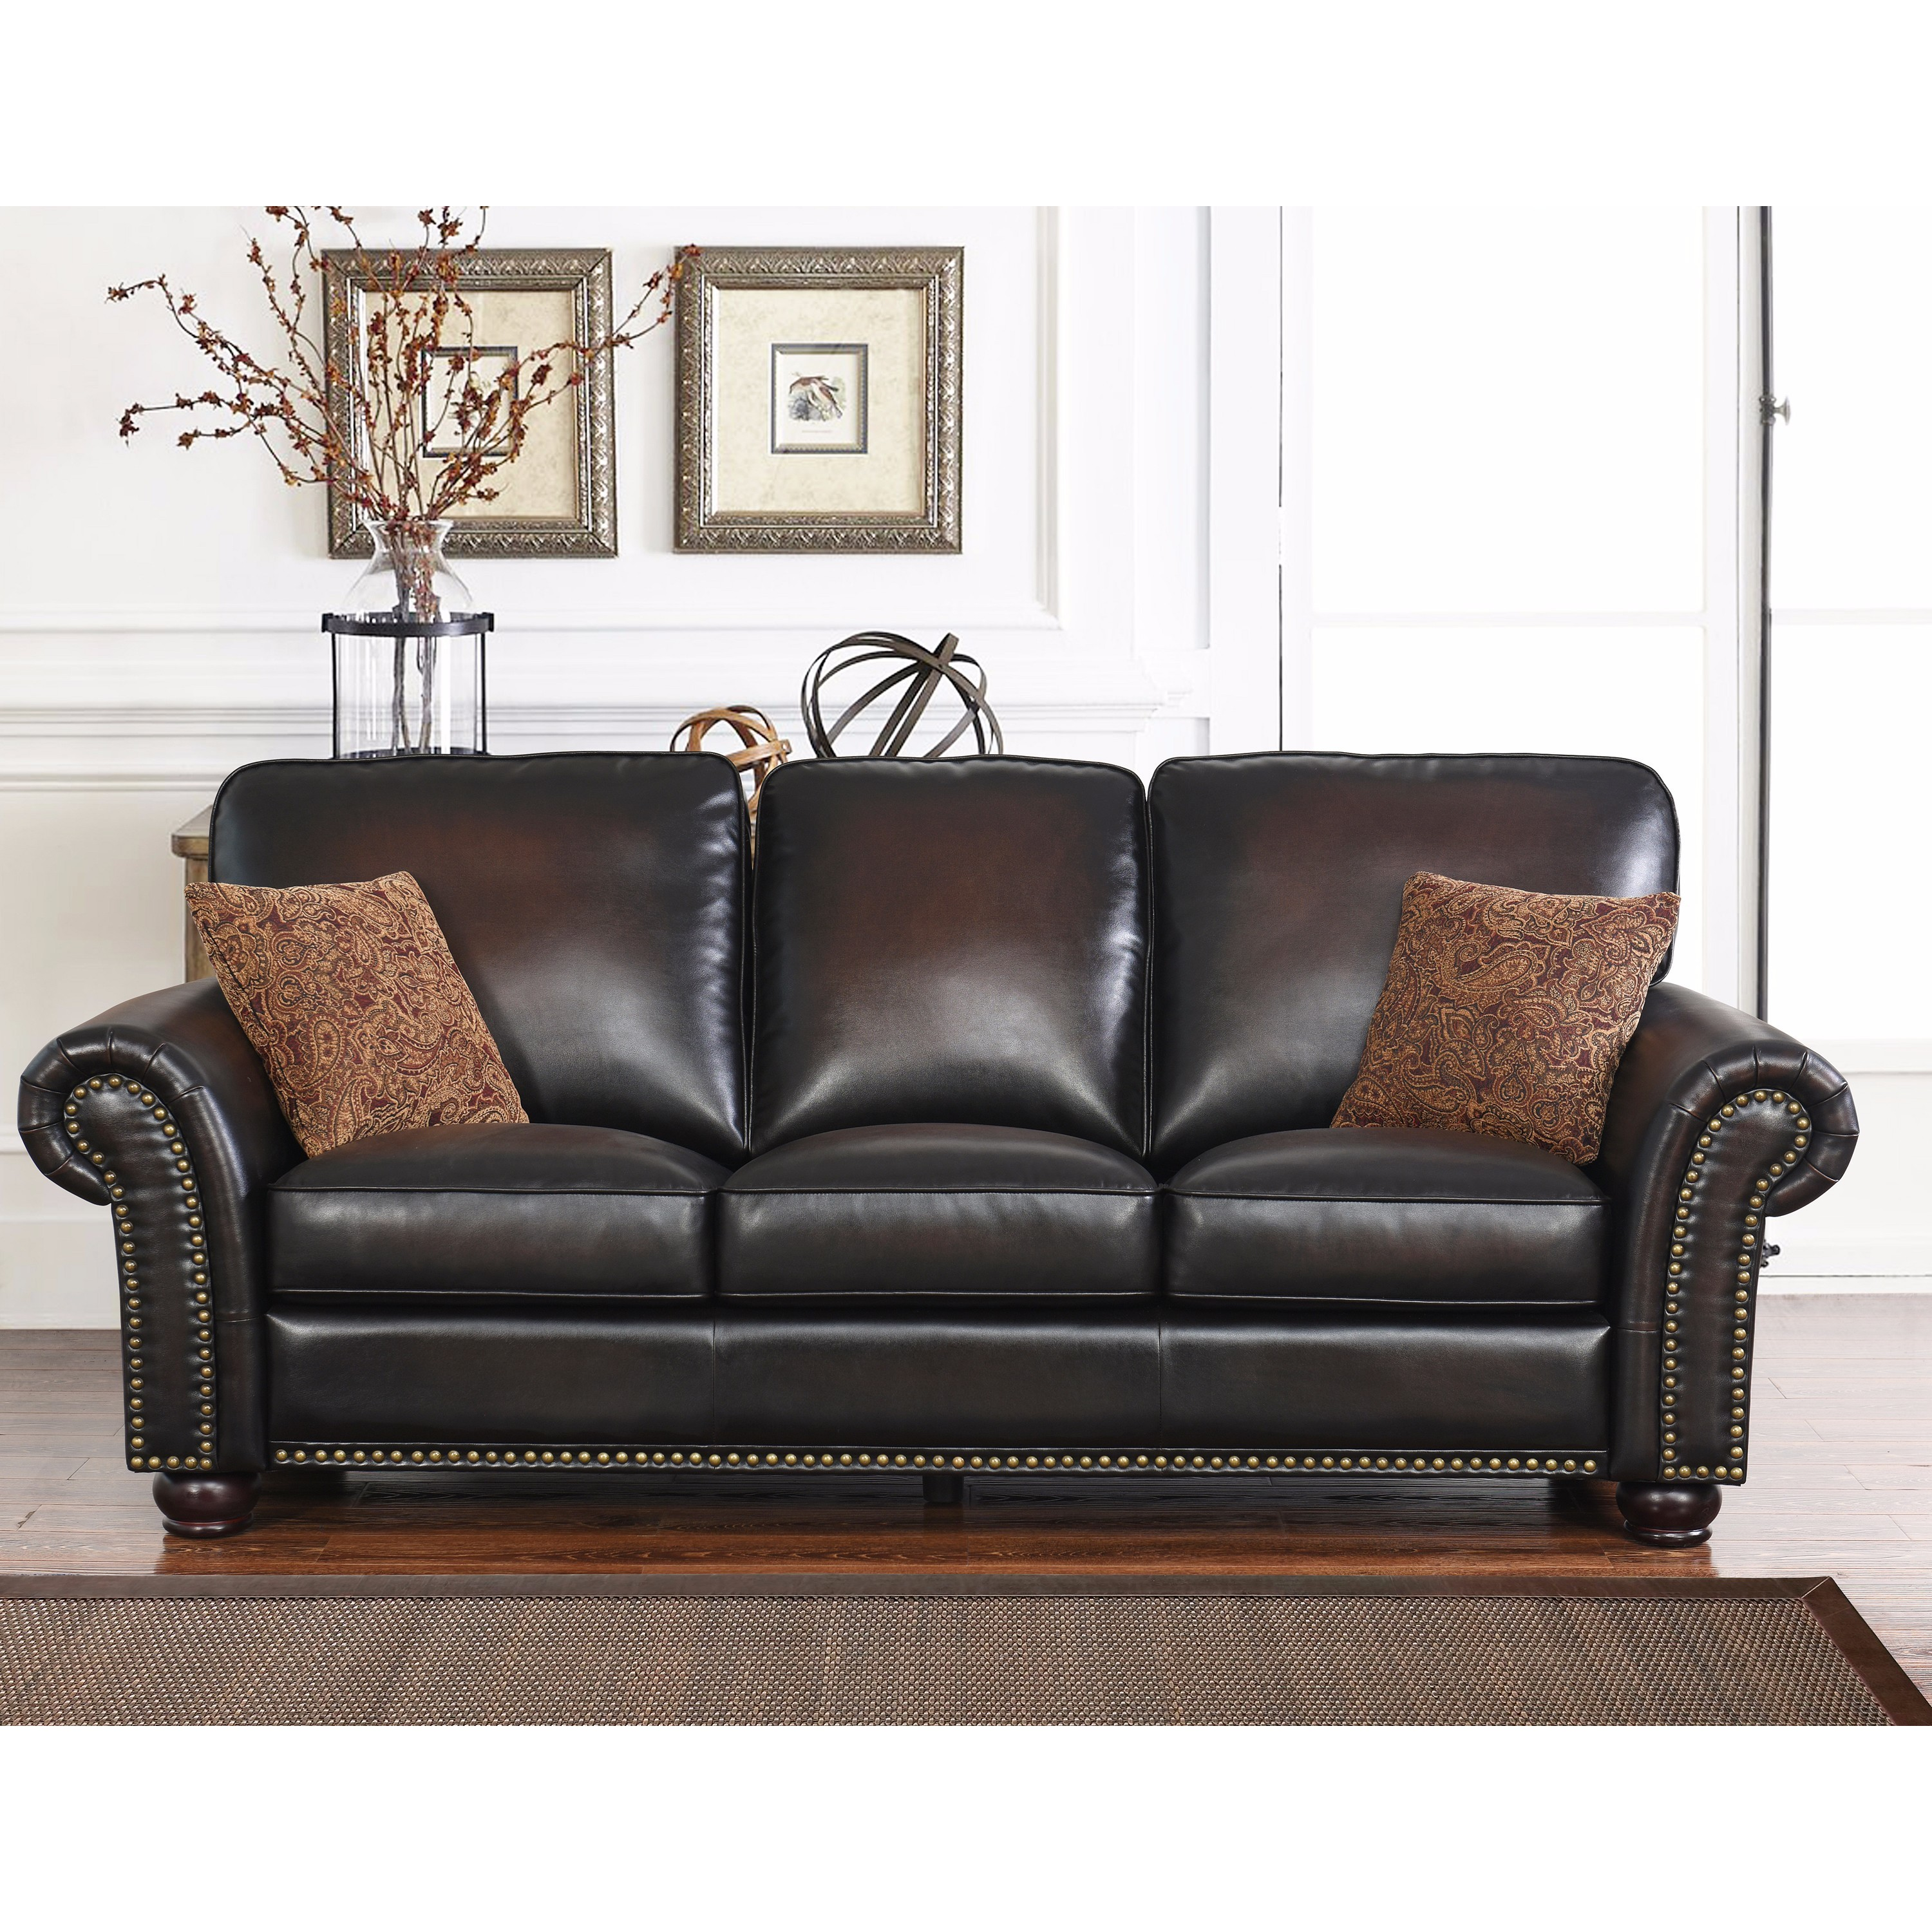 Details about Abbyson Braxton Brown Bonded Leather Sofa Brown